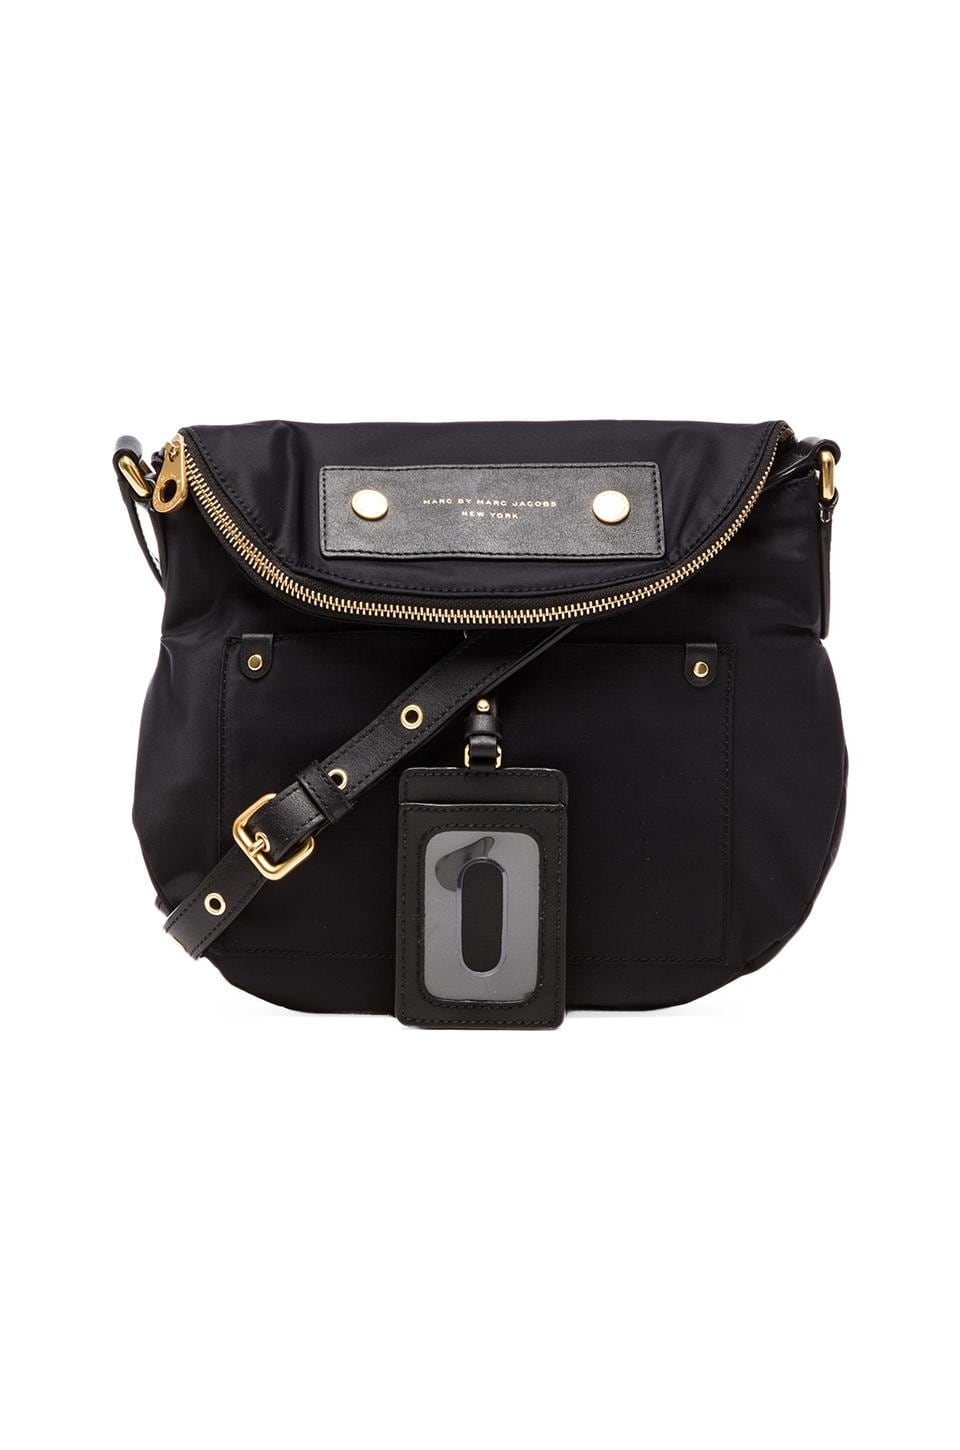 Marc by Marc Jacobs Preppy Nylon Natasha in Black